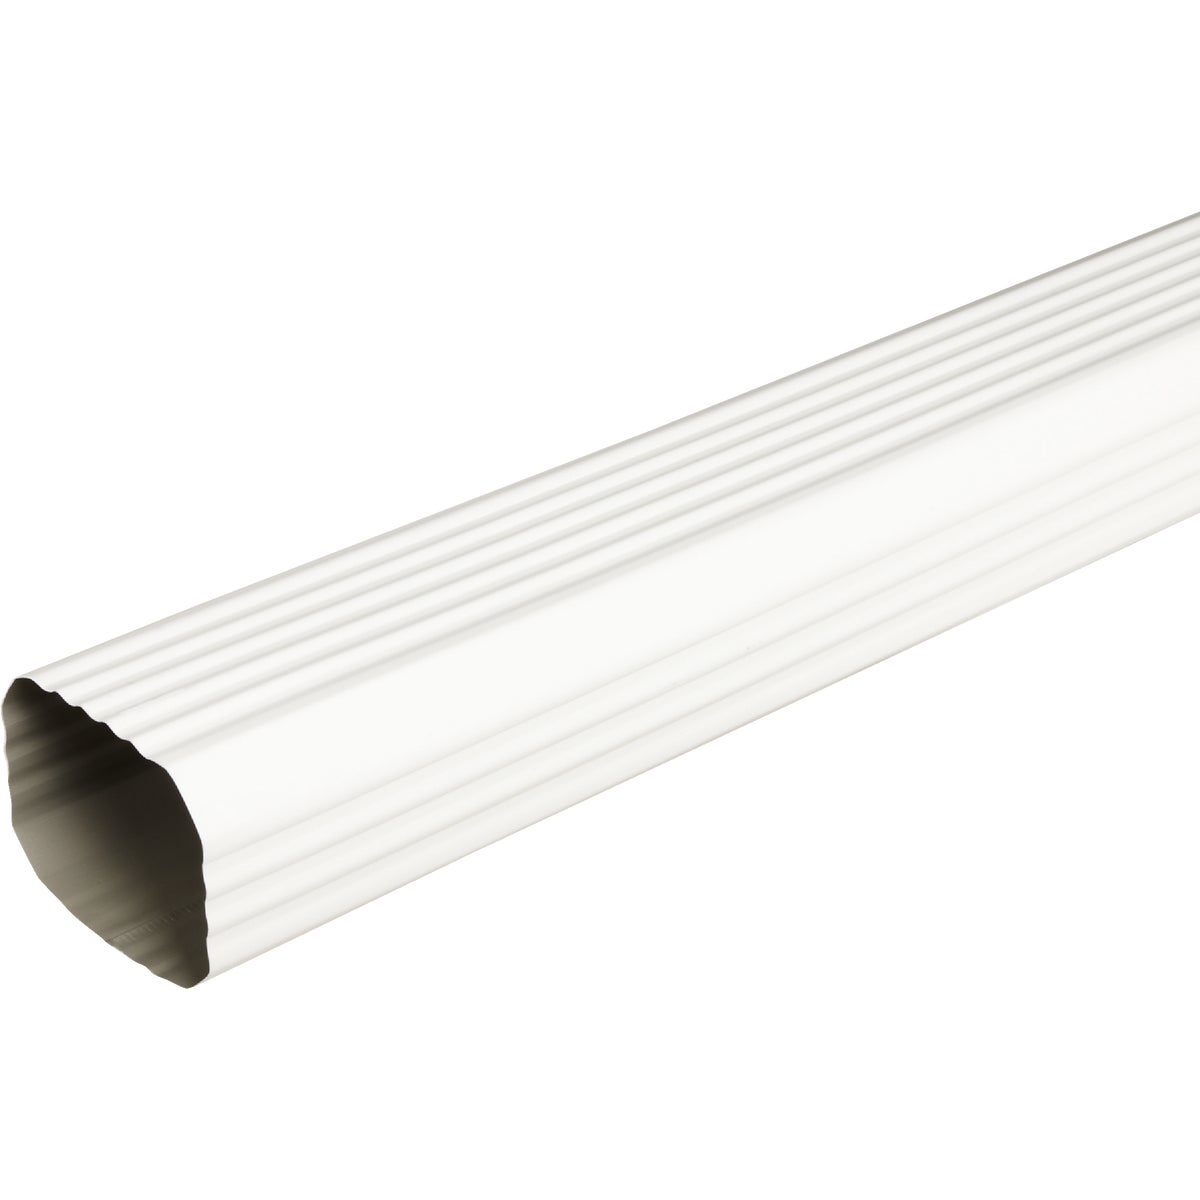 2X3 WHITE DOWNSPOUT - 2601100120 by Amerimax Home Prod